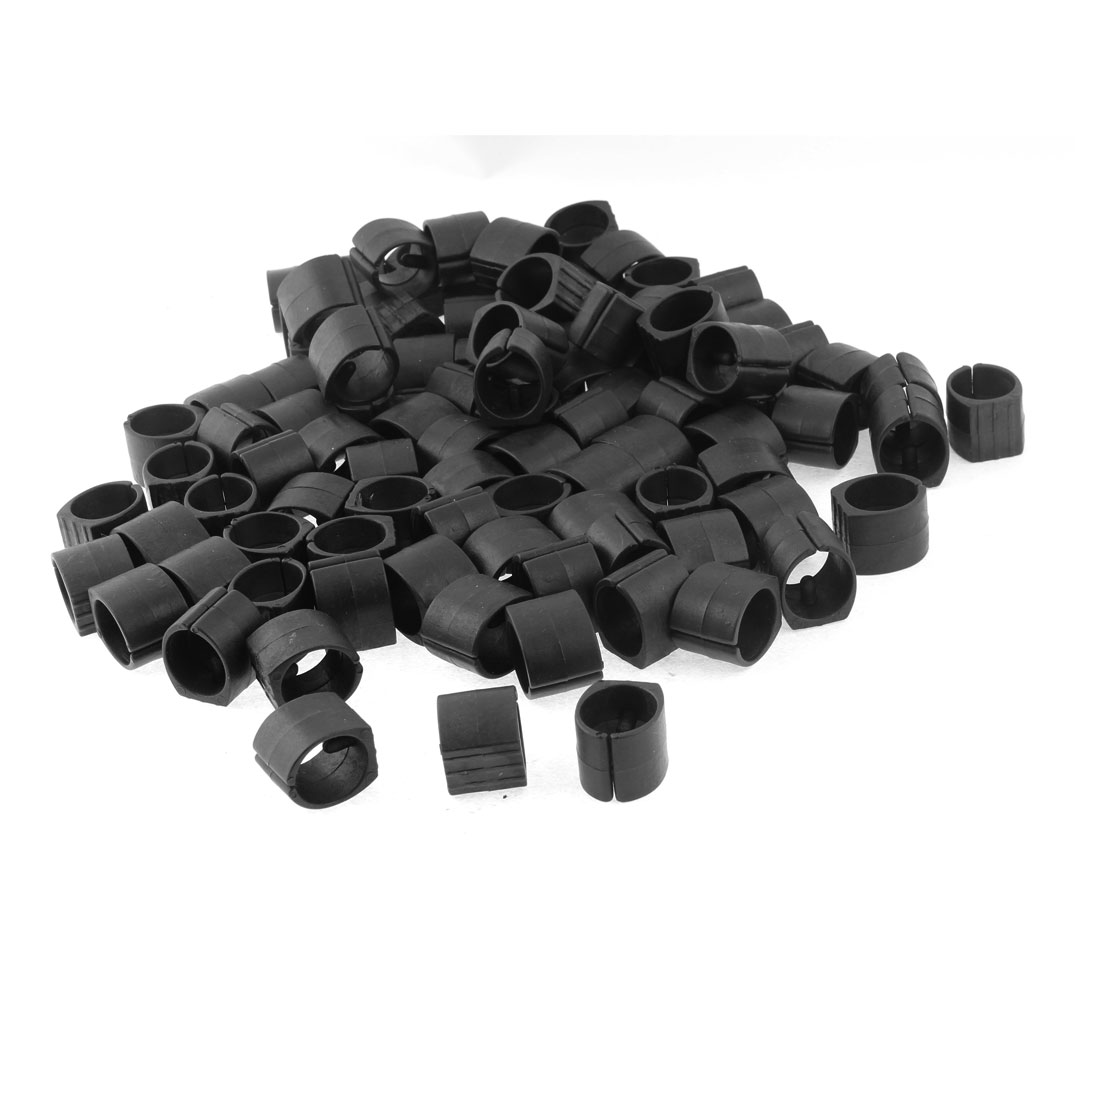 Home Furniture Chair Pipe Plastic Foot Clamp Pads U-Shape Caps Black 100pcs